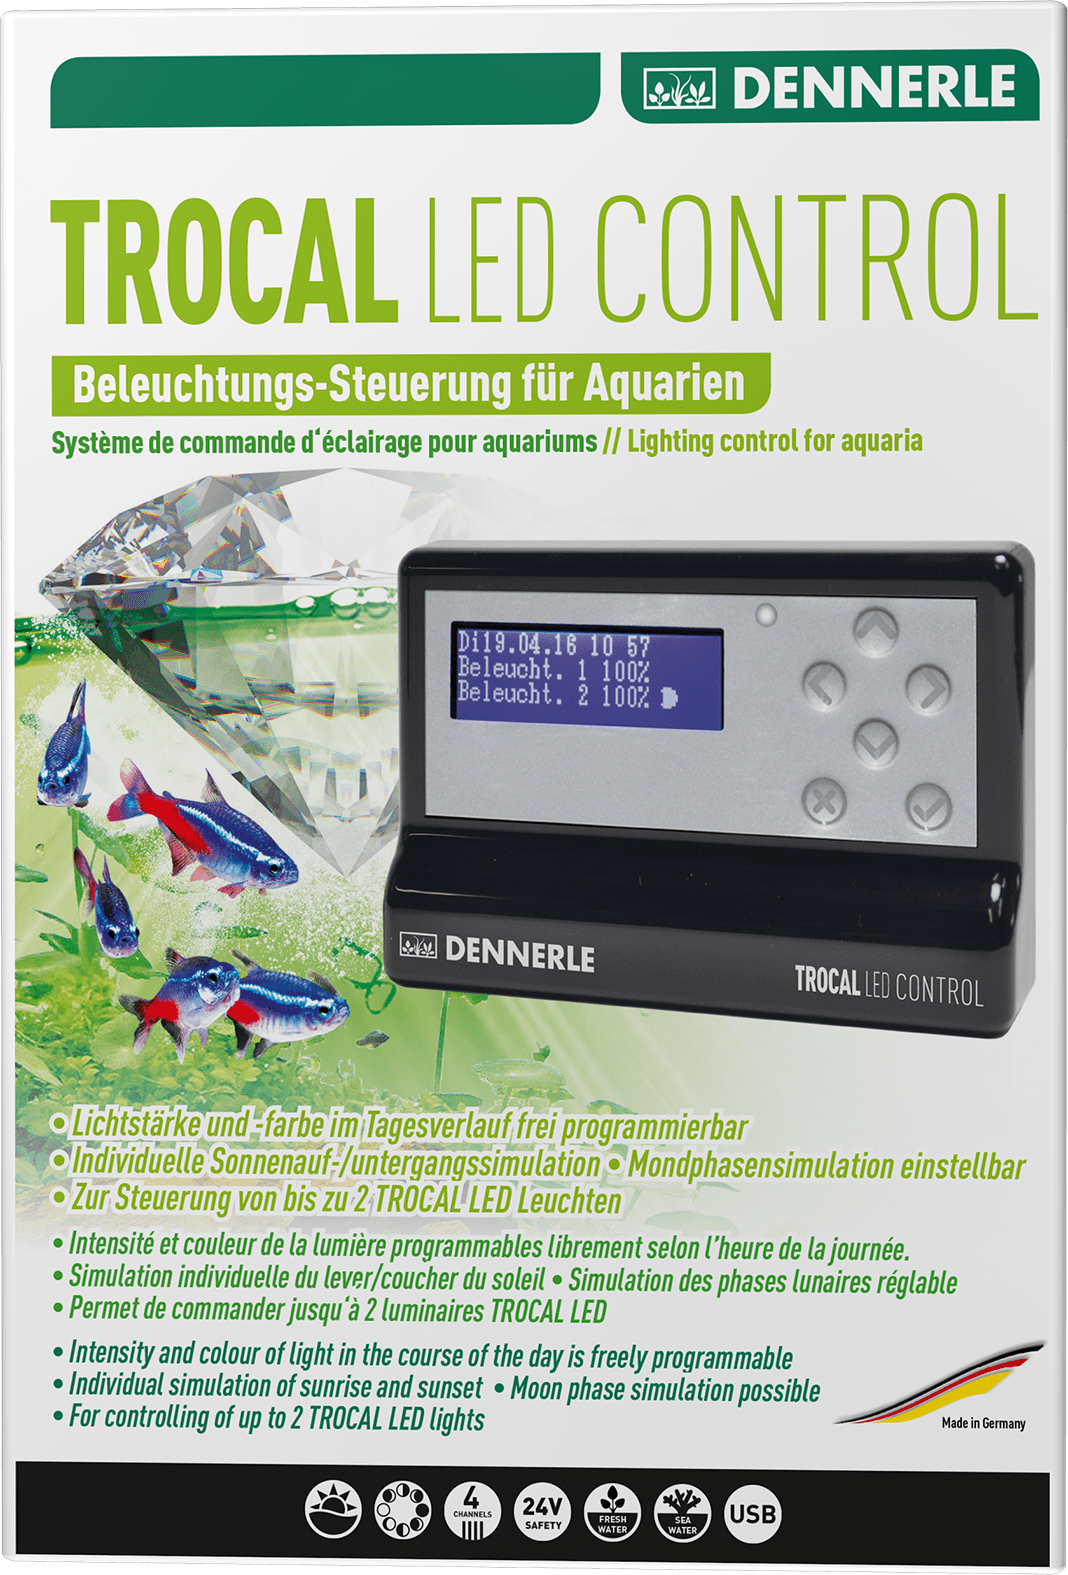 Eclairage Led Dennerle Trocal Led Control Dennerle